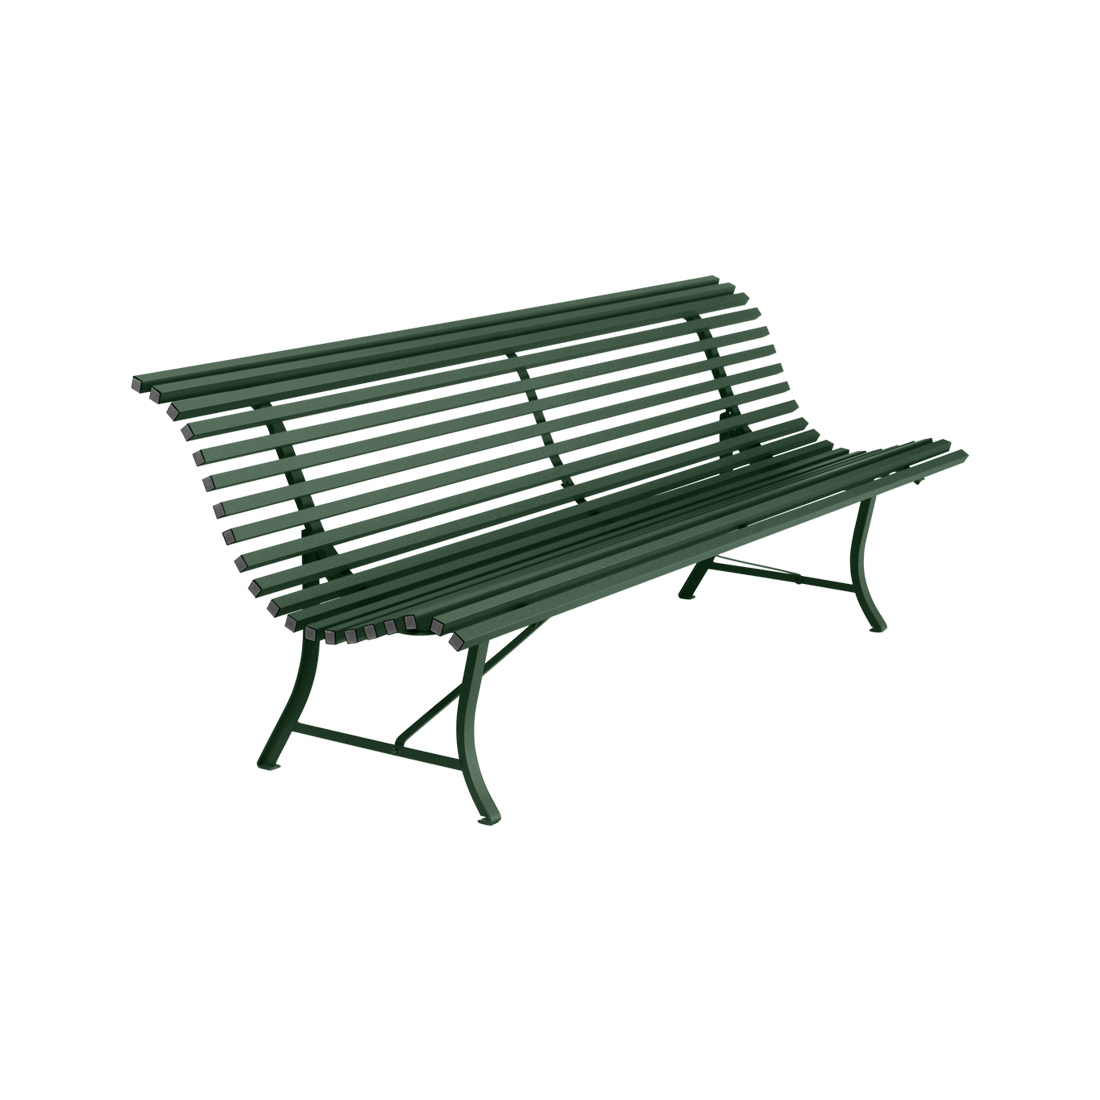 Sidetable 200 Cm.200 Cm Louisiane Bench For Outdoor Living Space